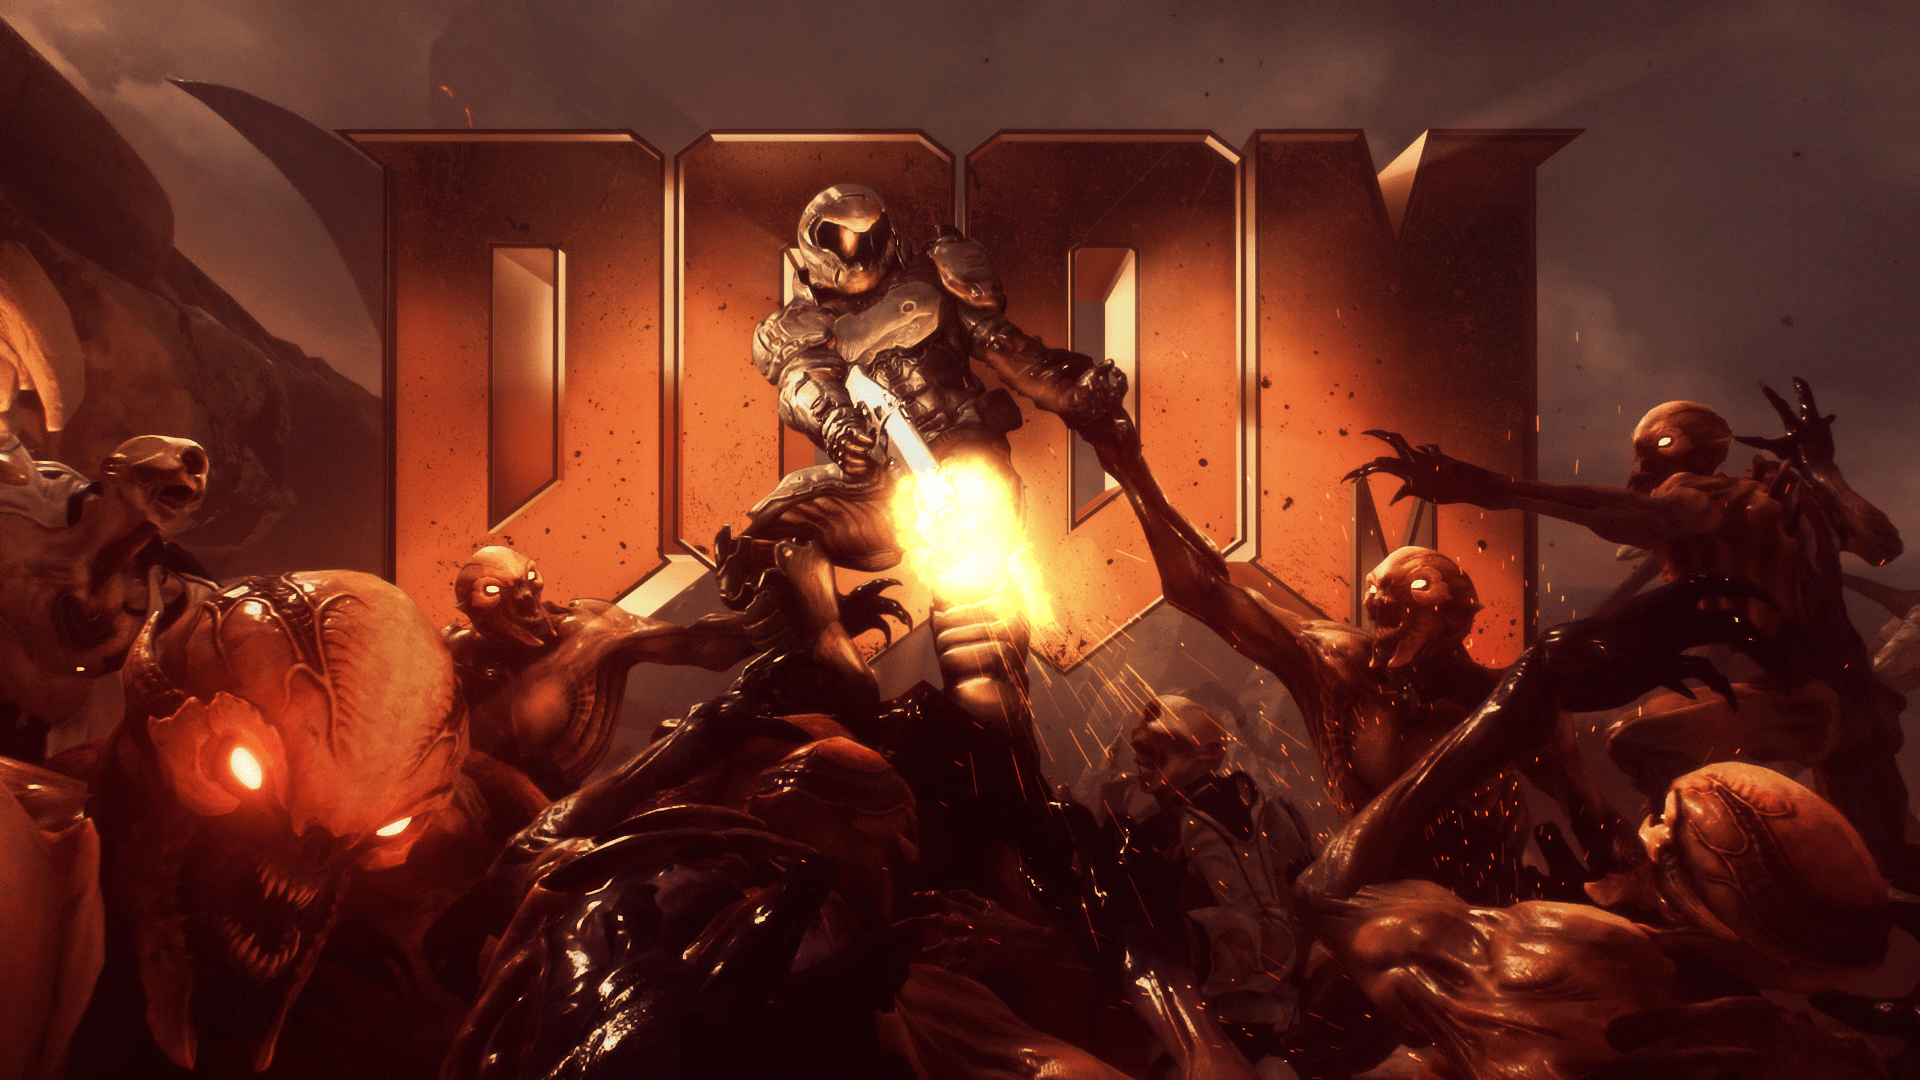 1920x1080 Classic Doom 2016 Wallpaper | DOOM | Doom 2016, Doom 4, Doom game